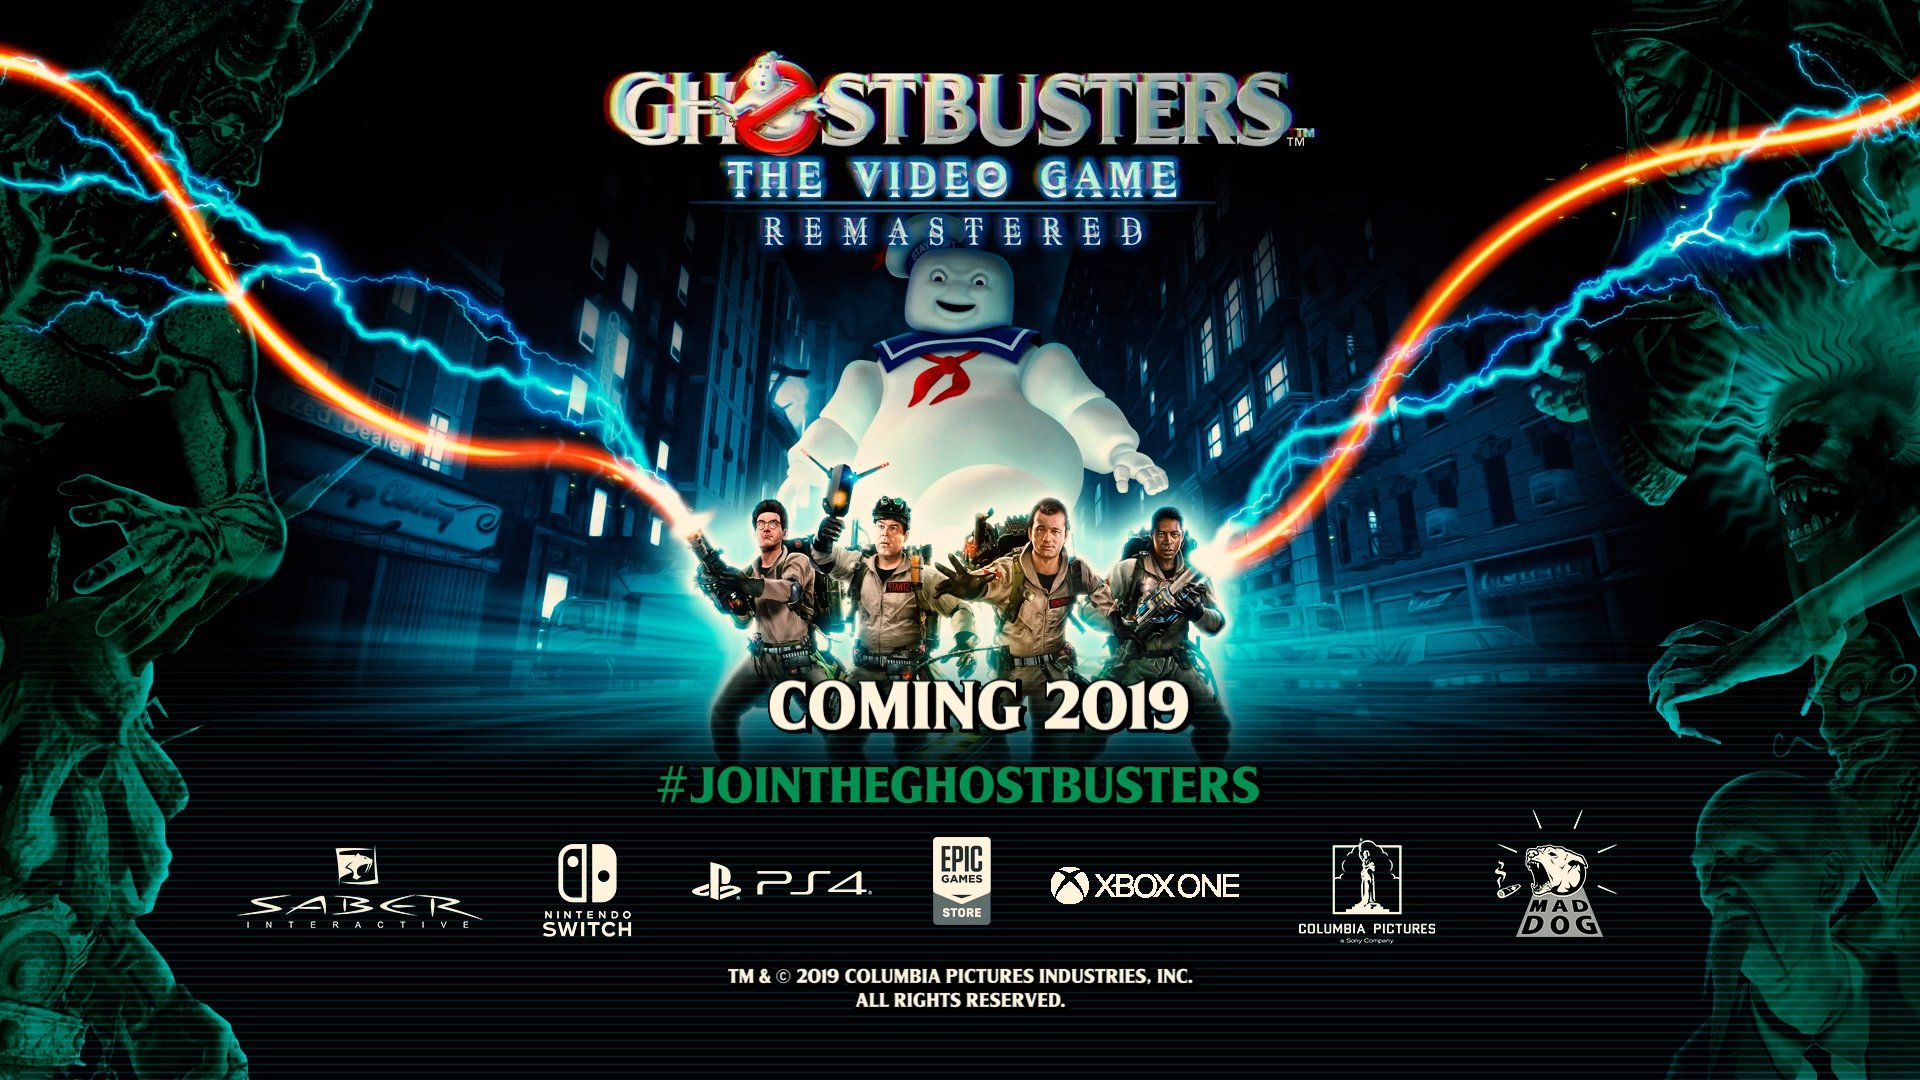 Ghostbusters: The Video Game Remaster trailer & announcement Header Image